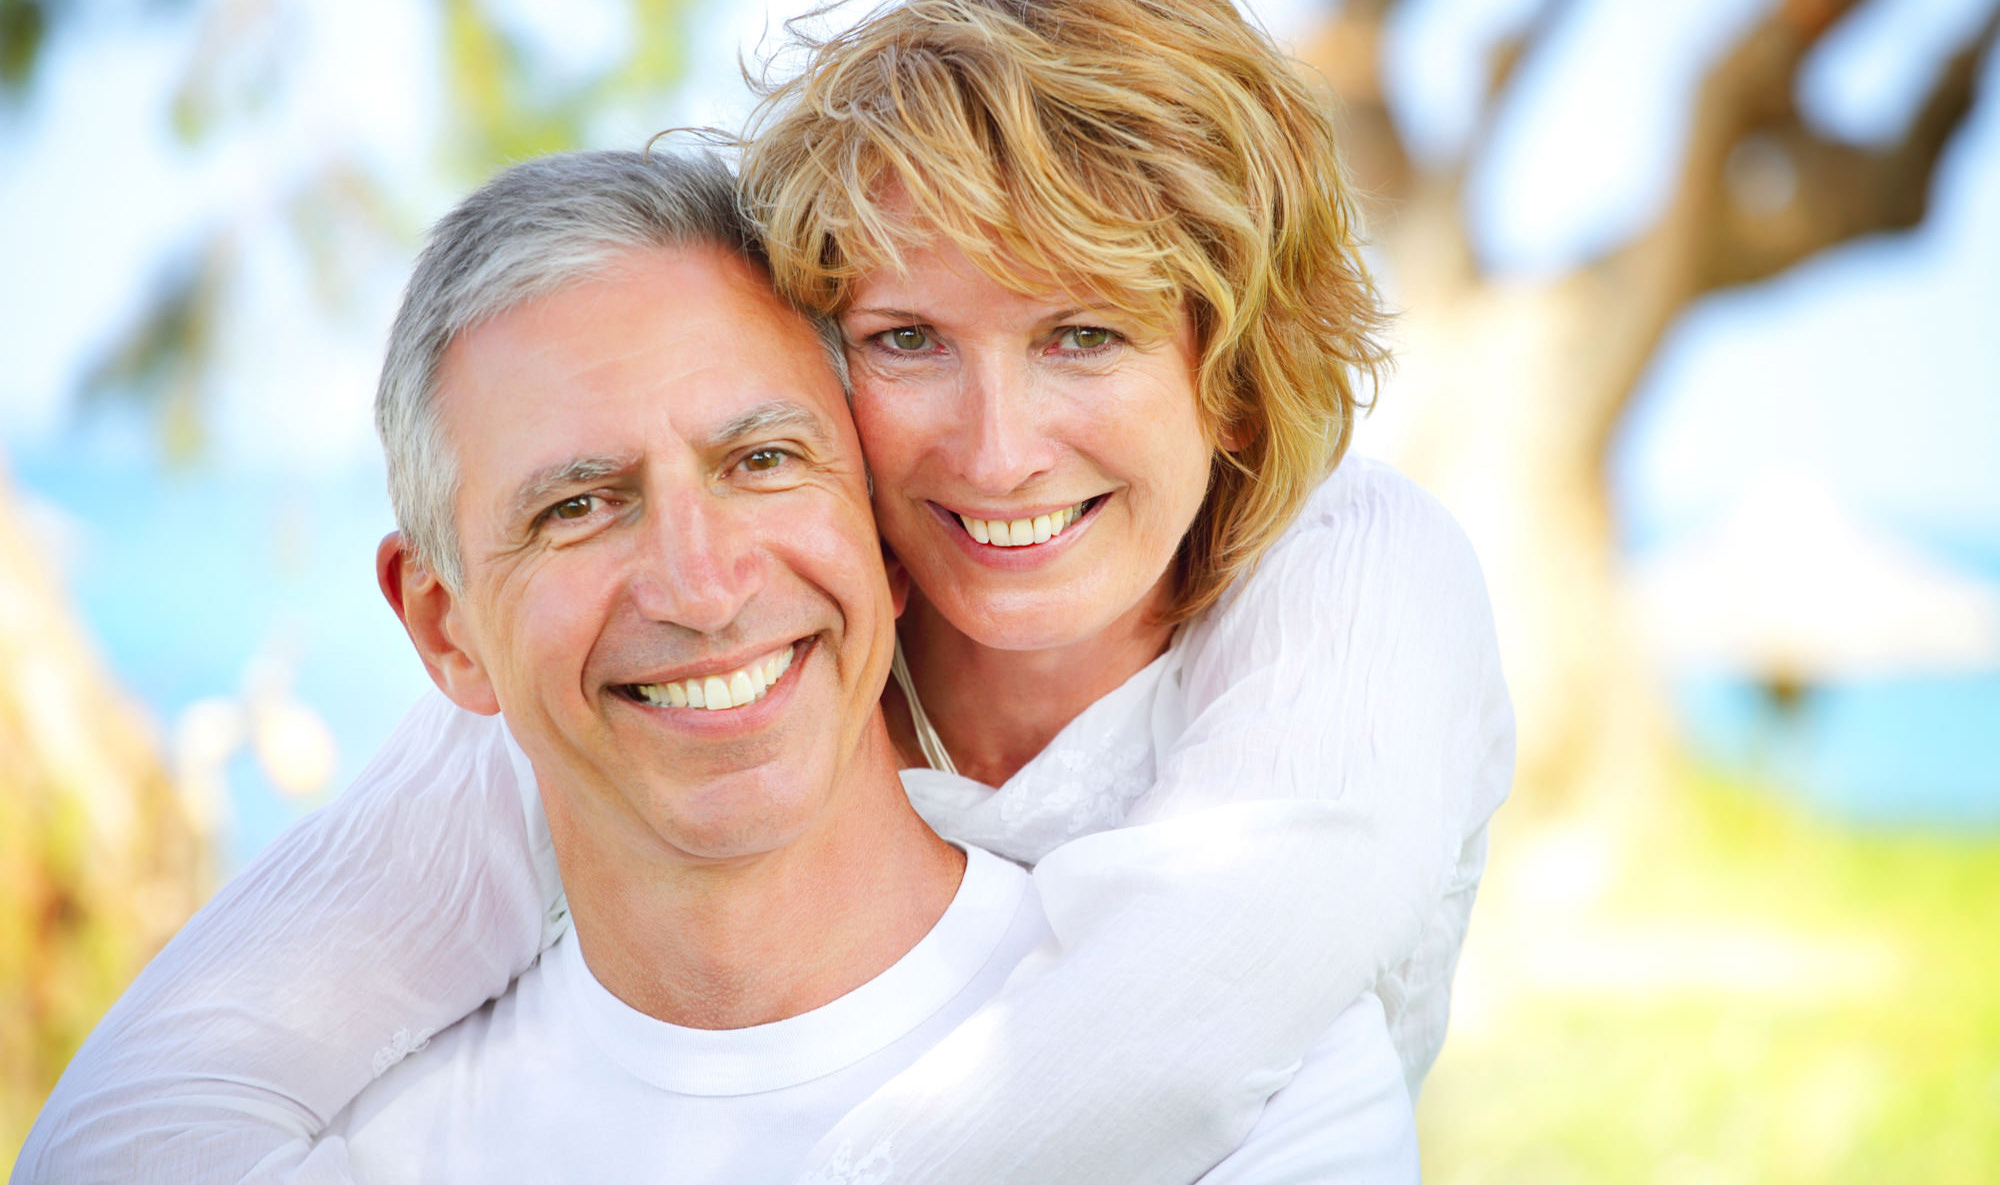 denture services kent